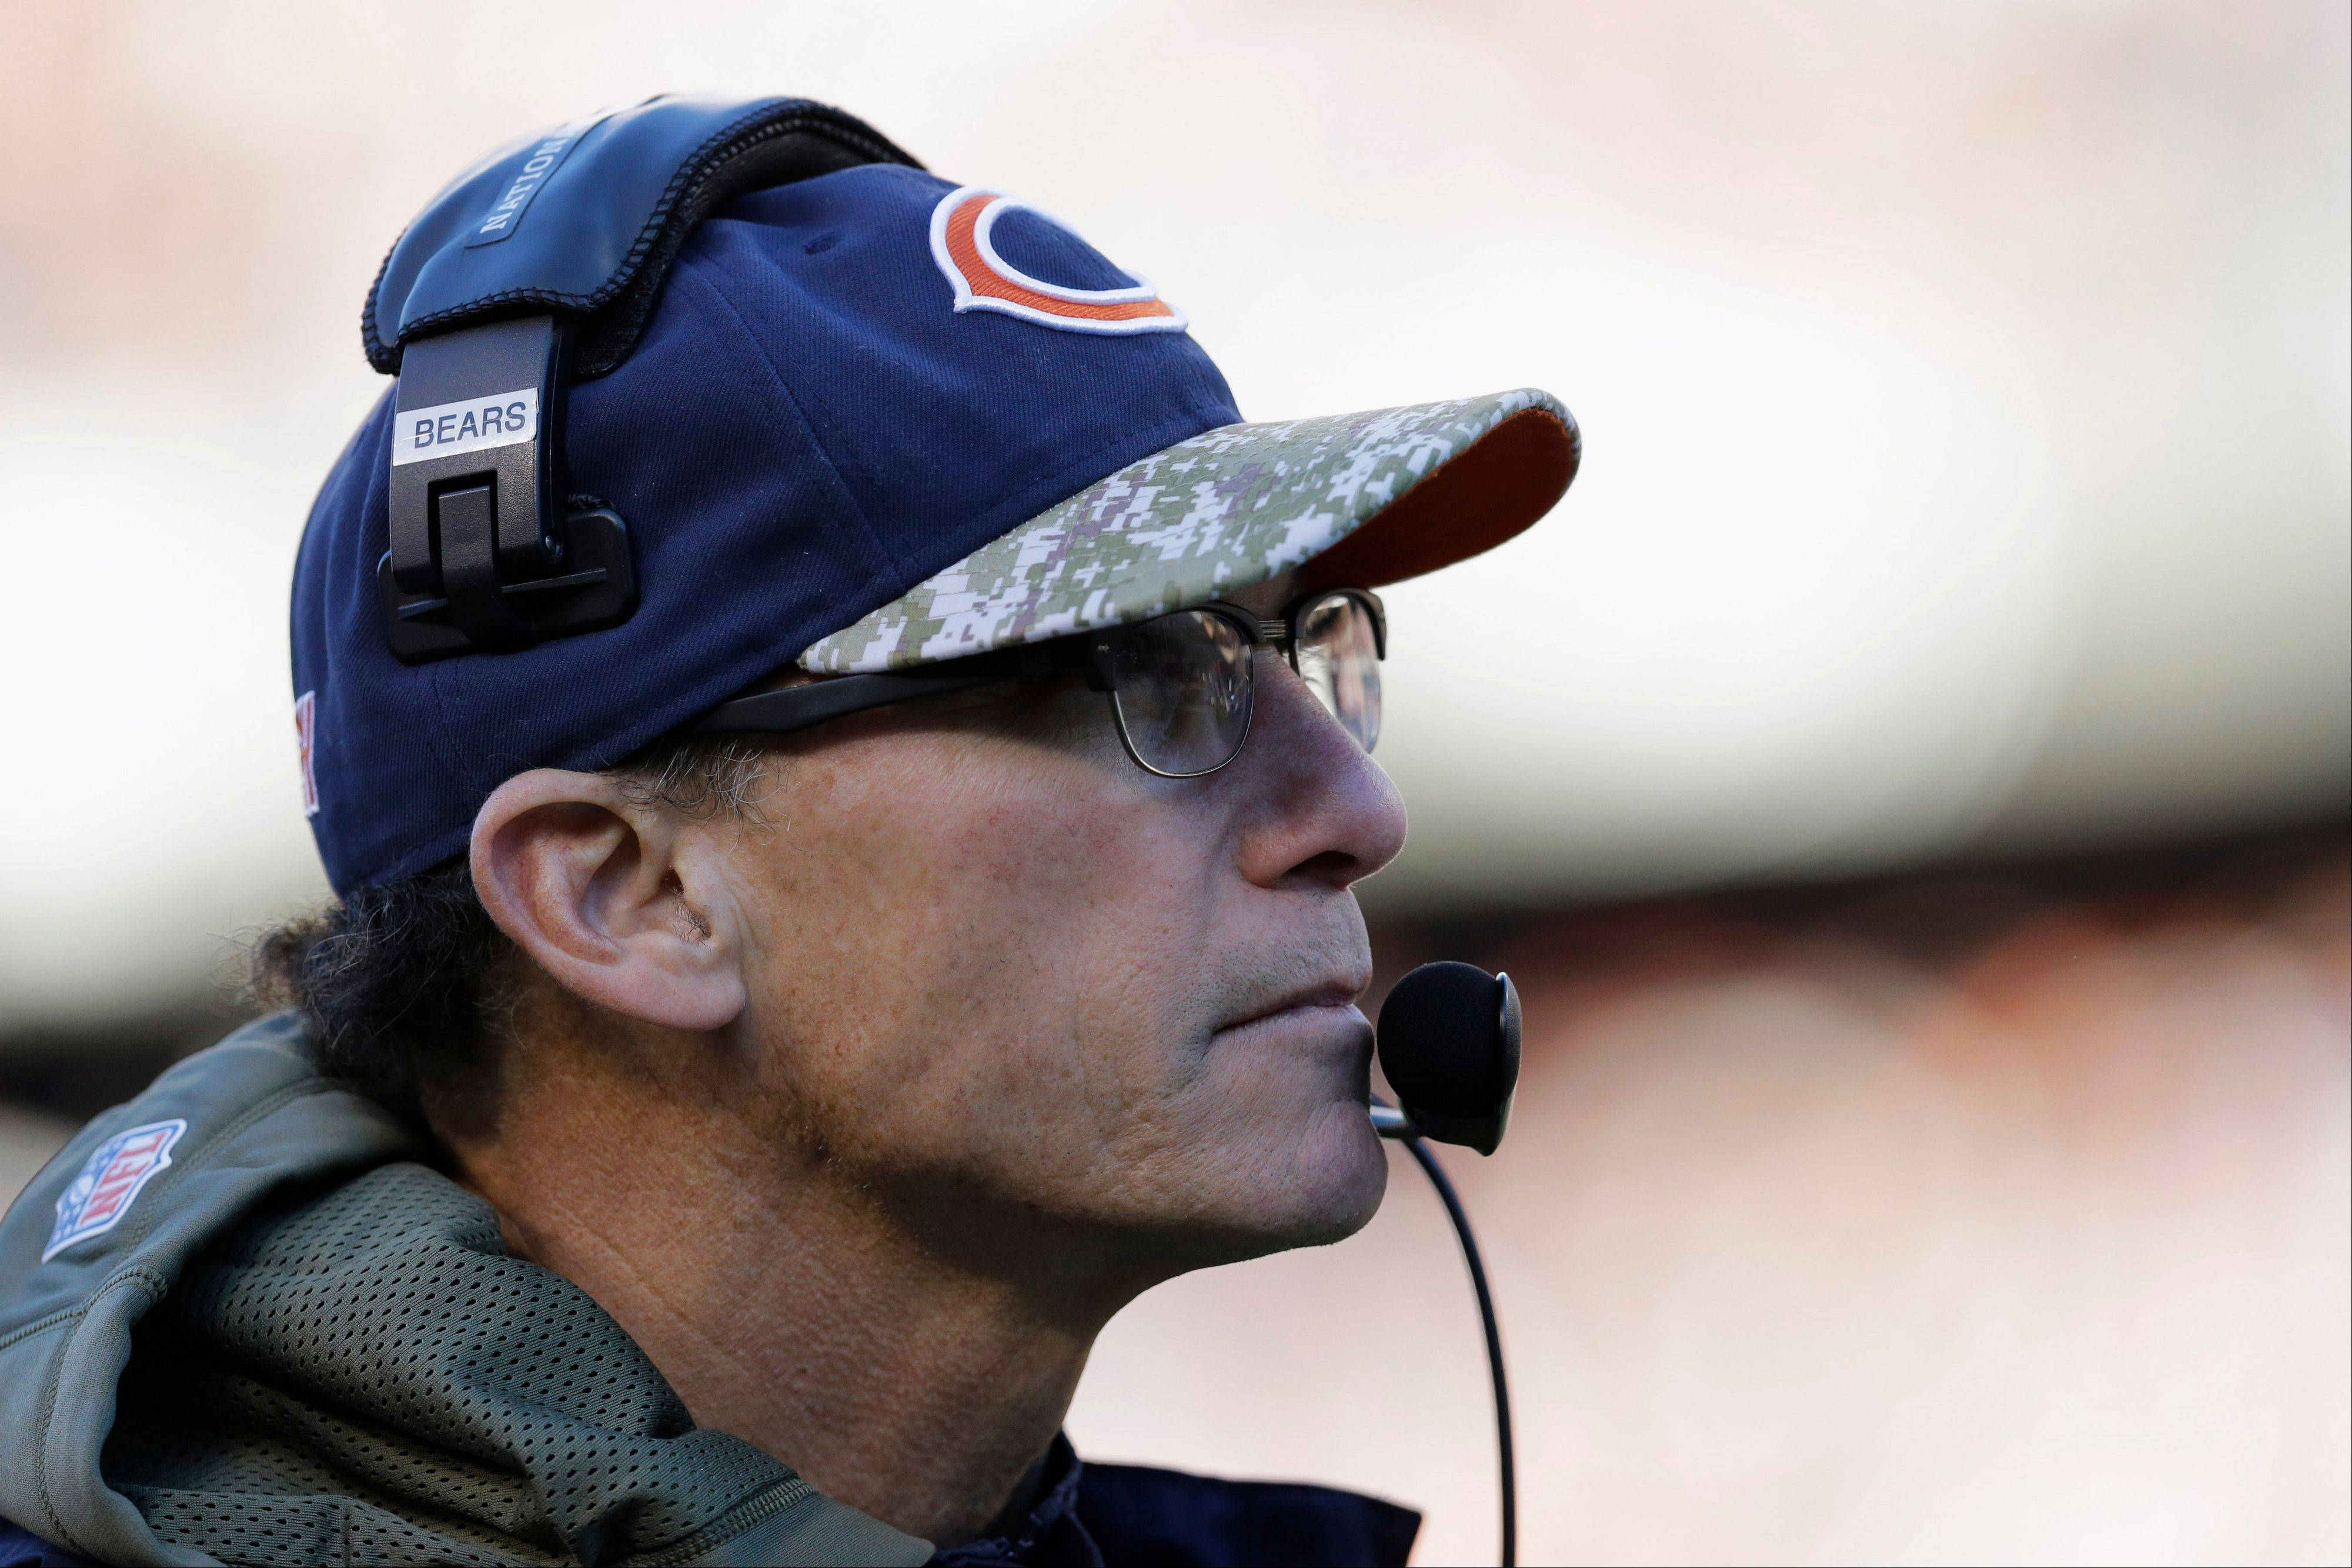 Marc Trestman has made a few tough calls this season on fourth-and-short. One that failed against the Lions earned the Bears coach plenty of criticism after a 21-19 loss.